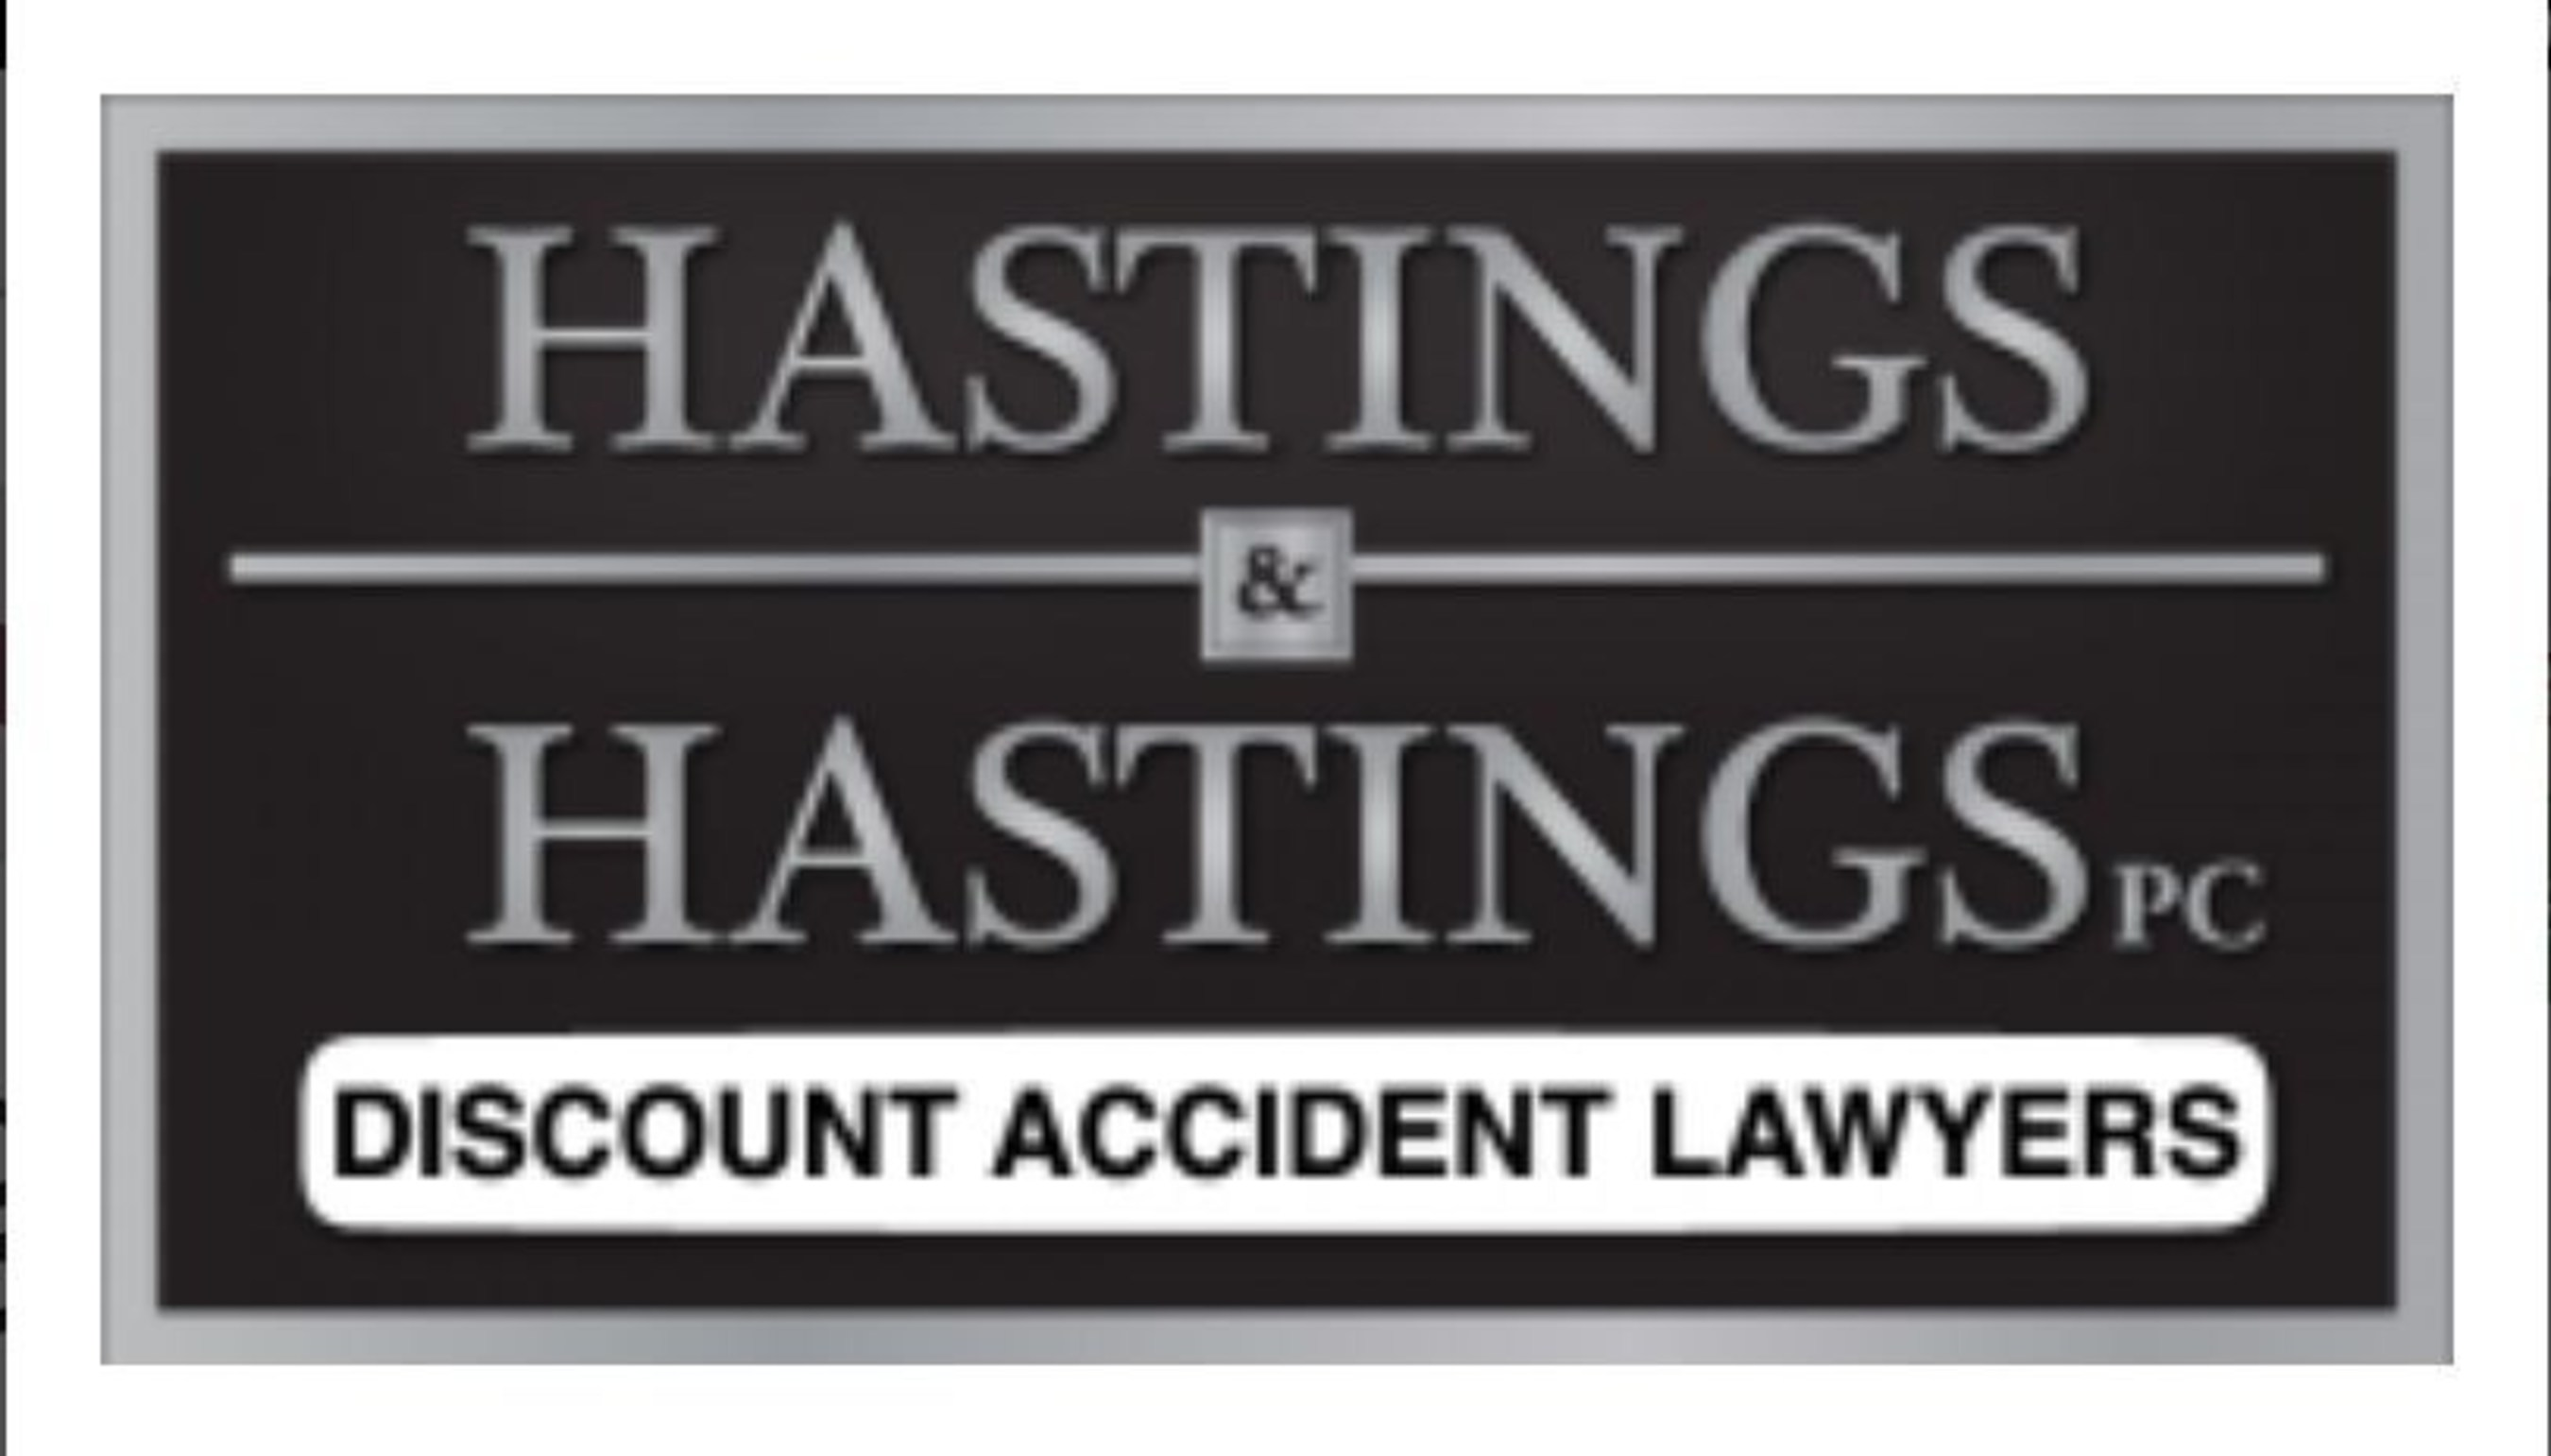 Hastings & Hastings Acknowledges the Importance of Defensive Driving